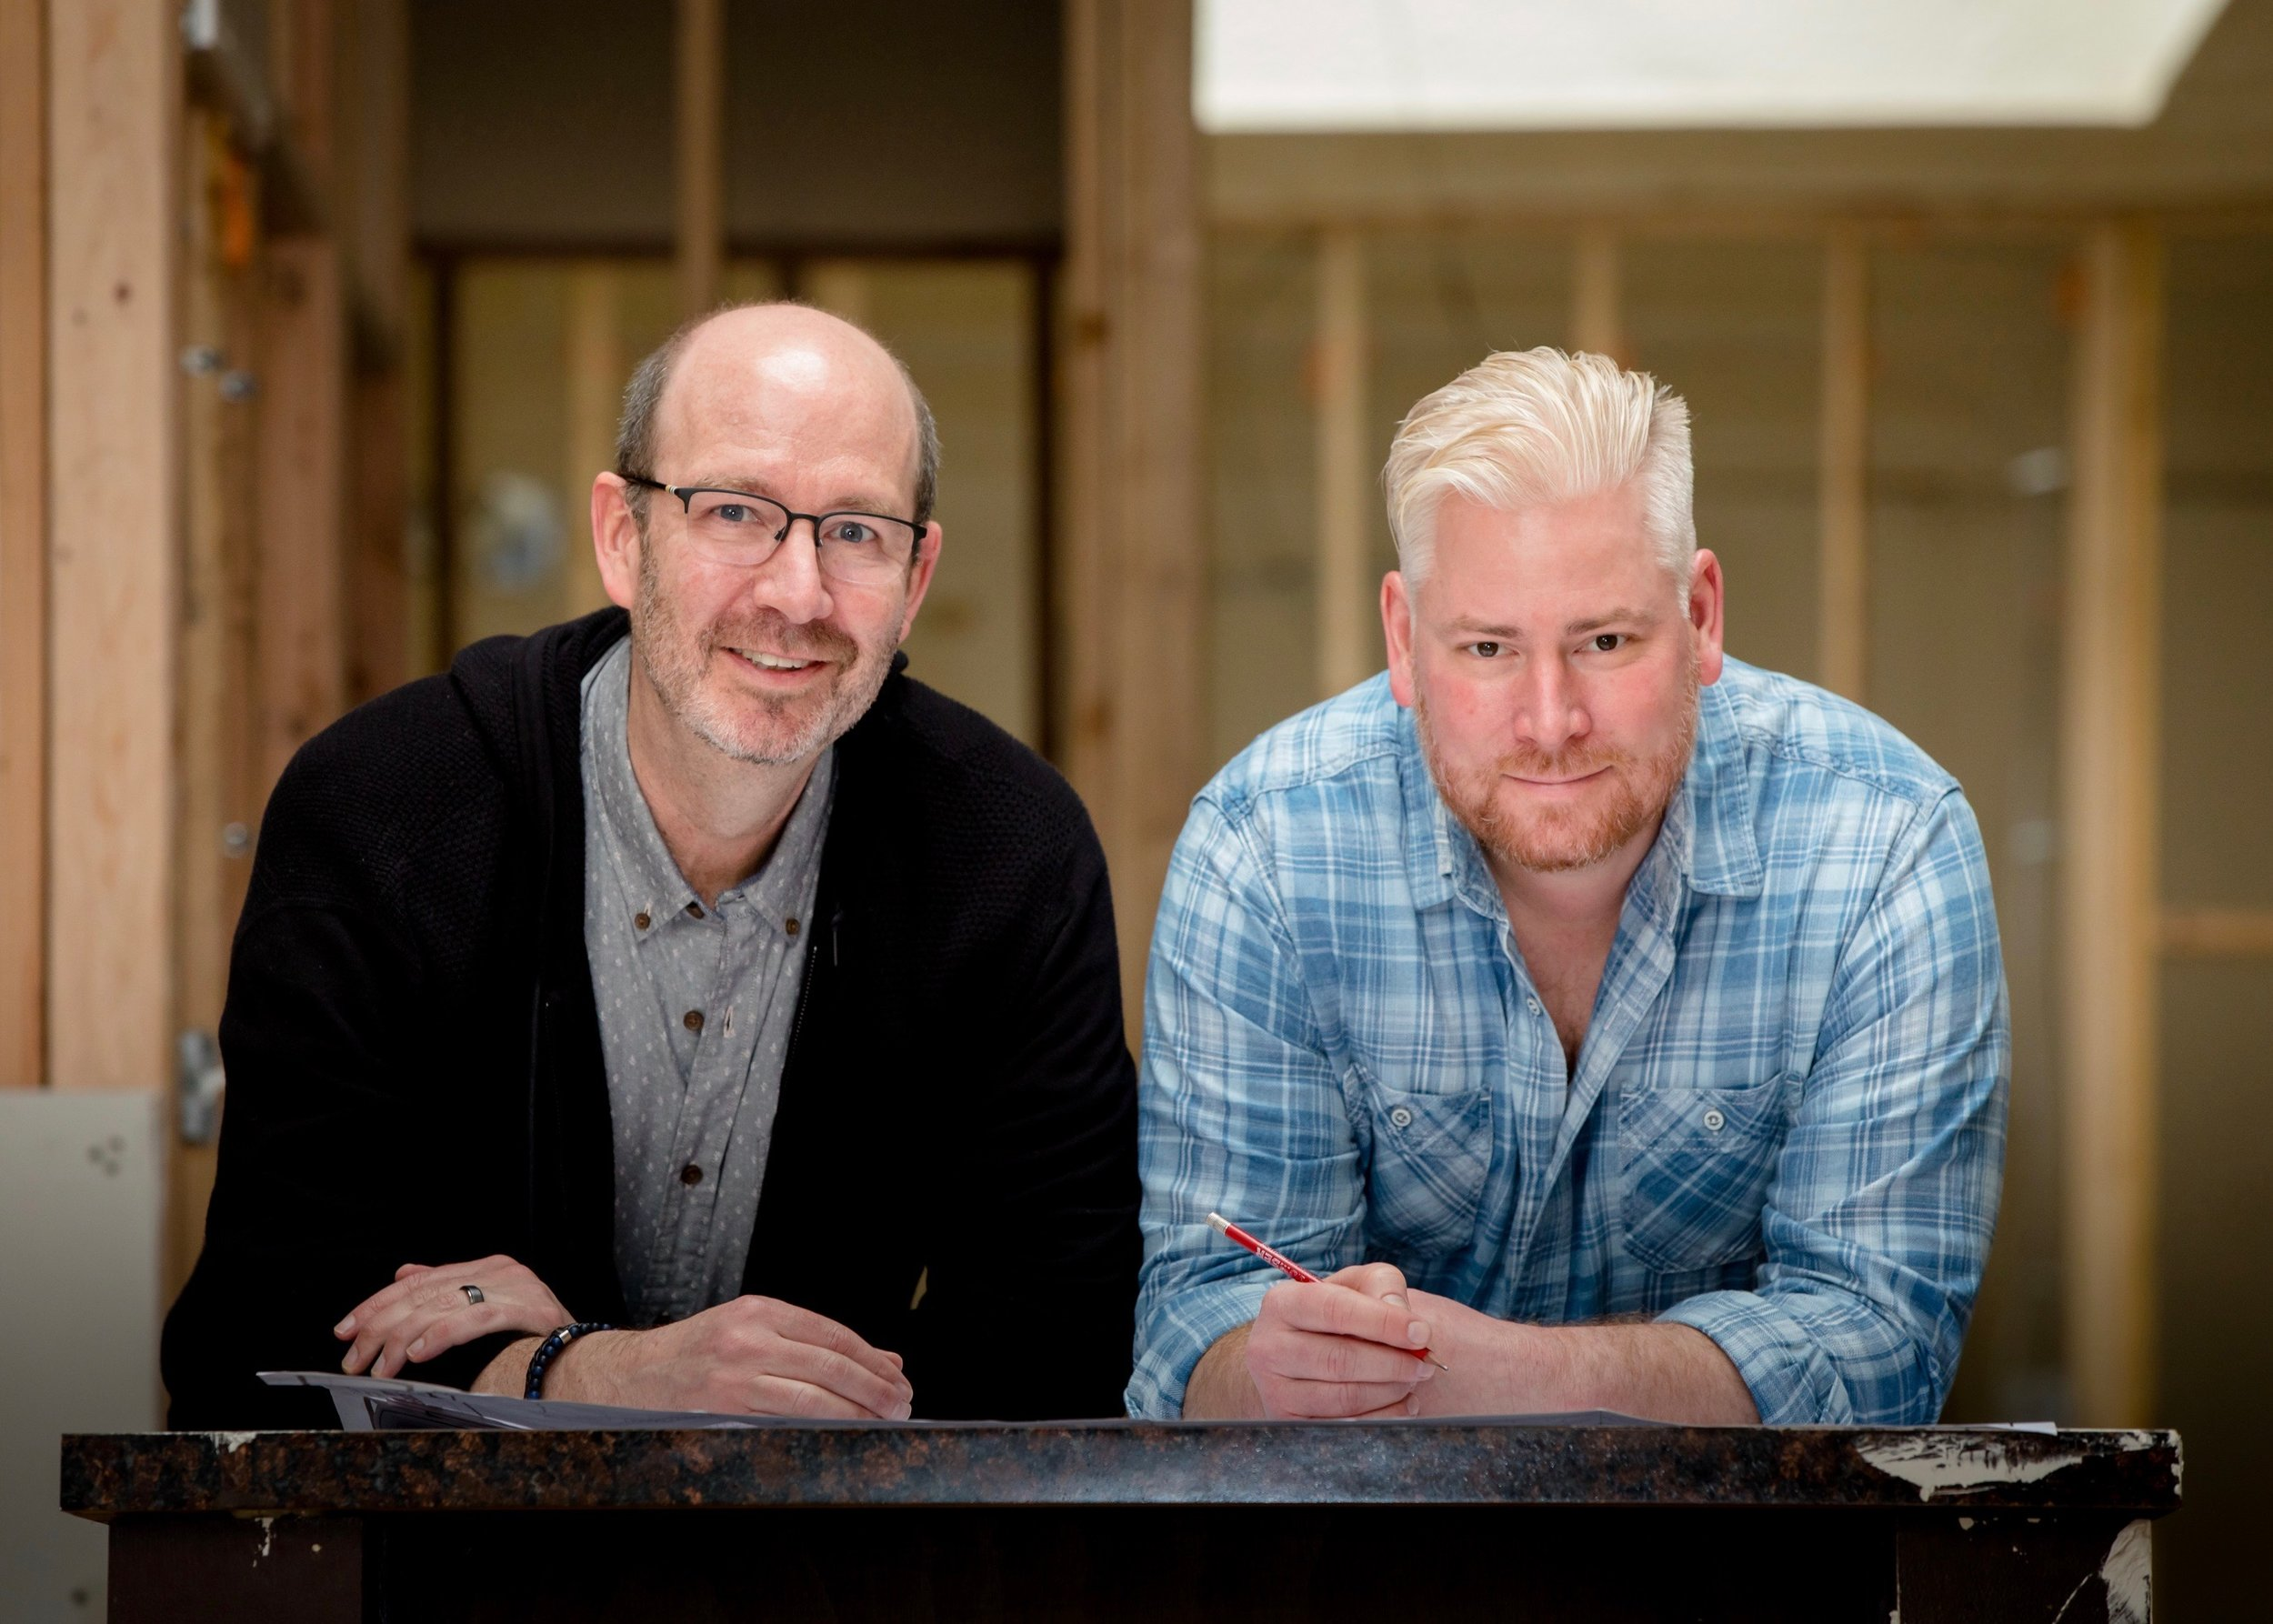 Meet Your Booksellers - READS & COMPANY is a partnership between ROBB CADIGAN (left) and JASON HAFER (right), two friends who share extensive experience in retailing, marketing, and a lifelong passion for books and community